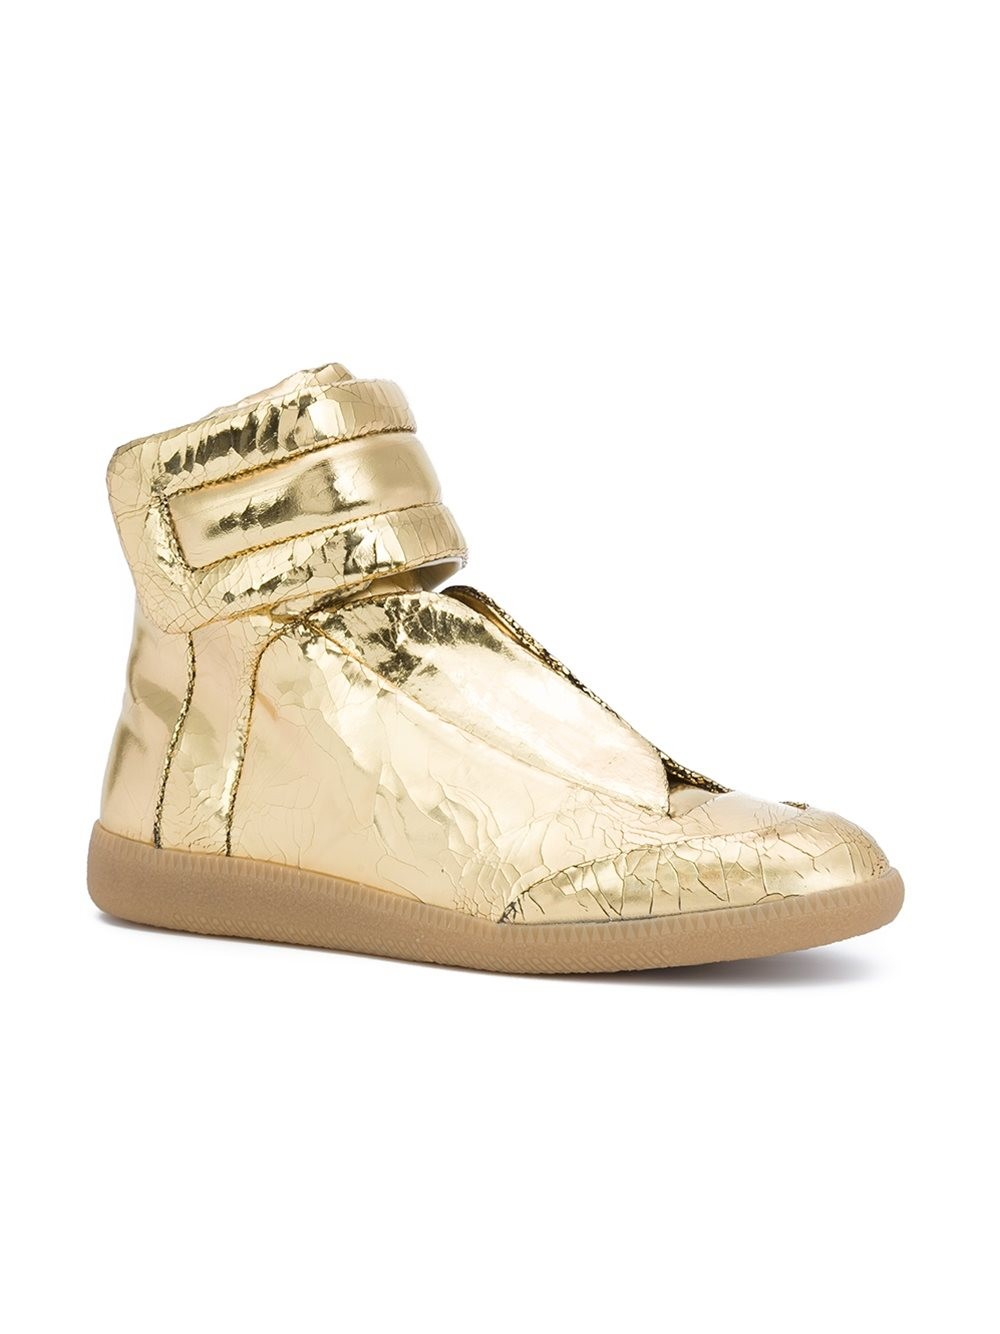 maison margiela future leather high top sneakers in metallic for men lyst. Black Bedroom Furniture Sets. Home Design Ideas